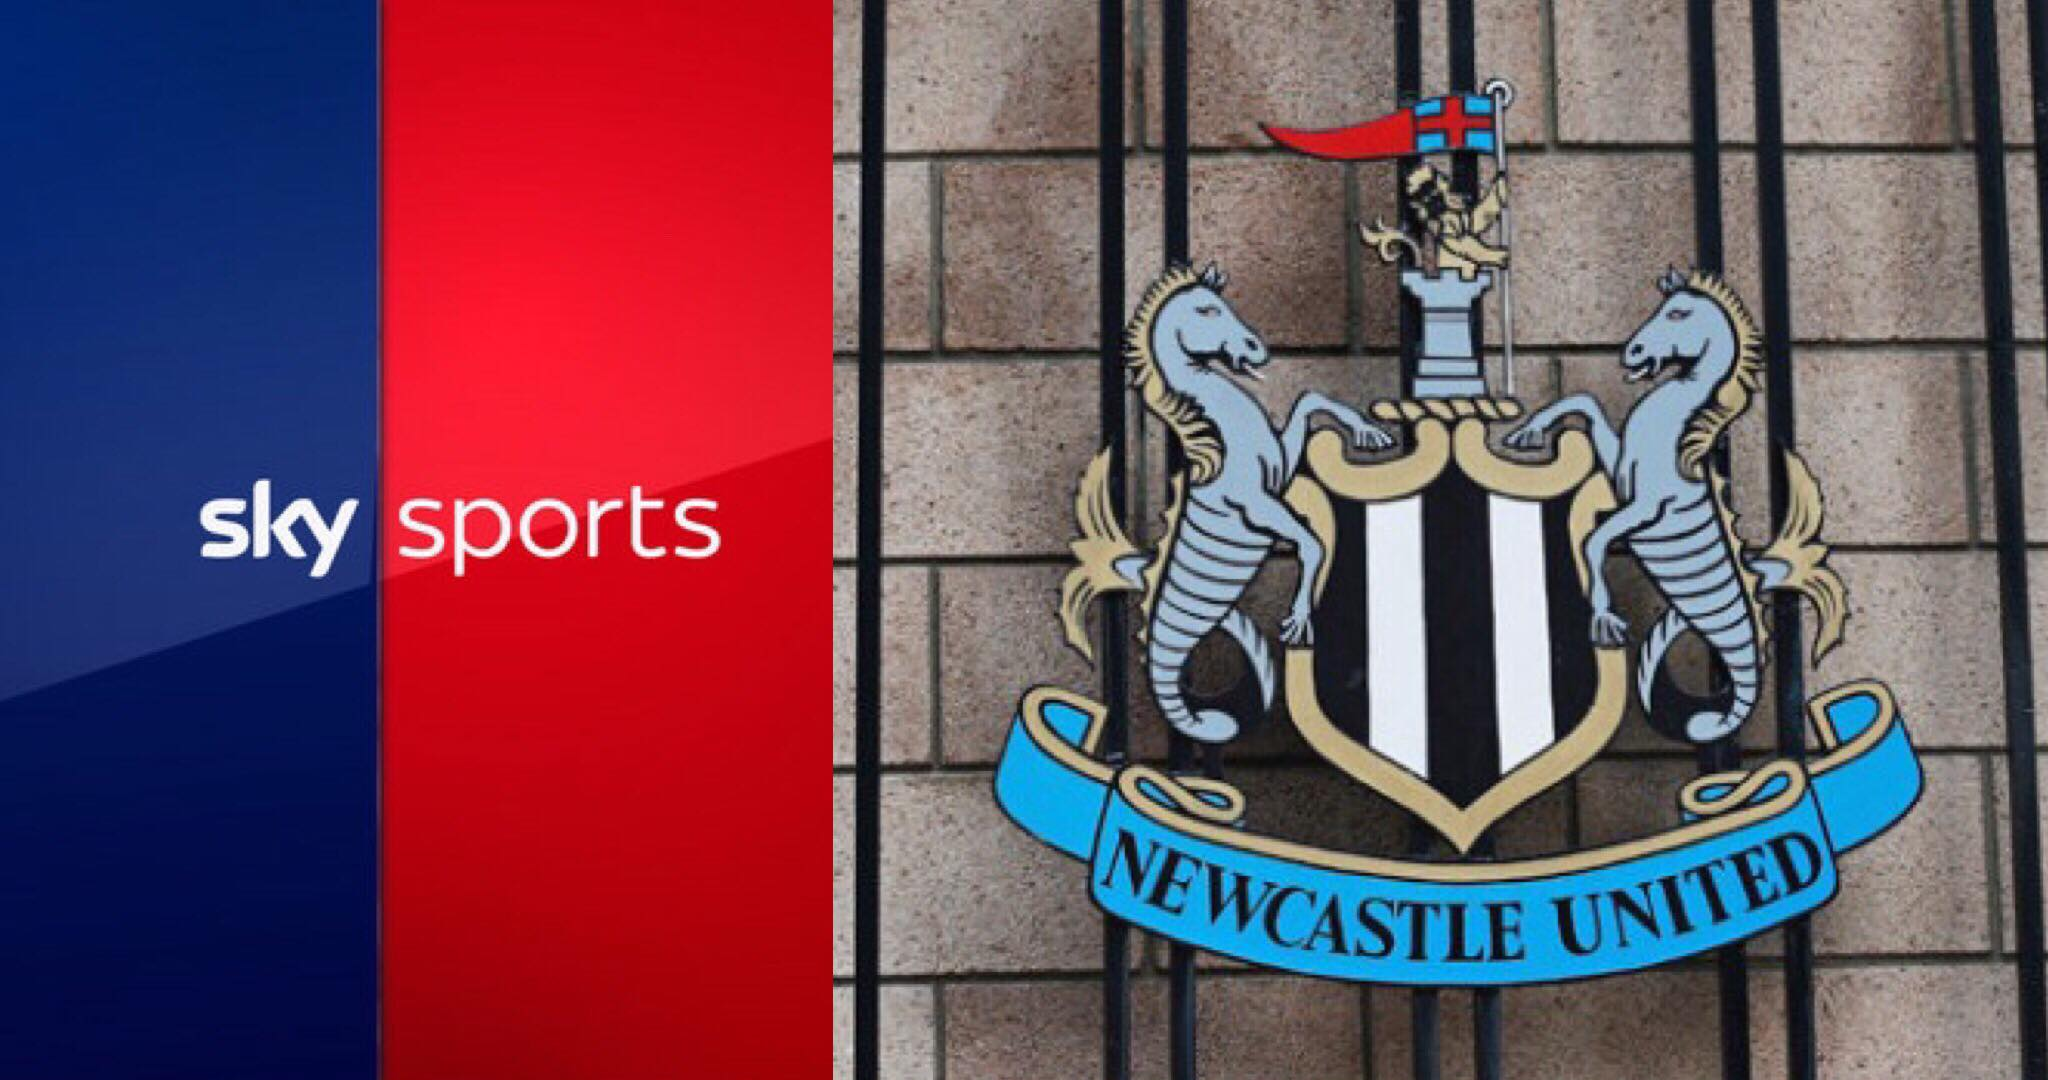 Sky Sports confirm NUFC's interest in available Premier League CB – Brighton, Burnley & West